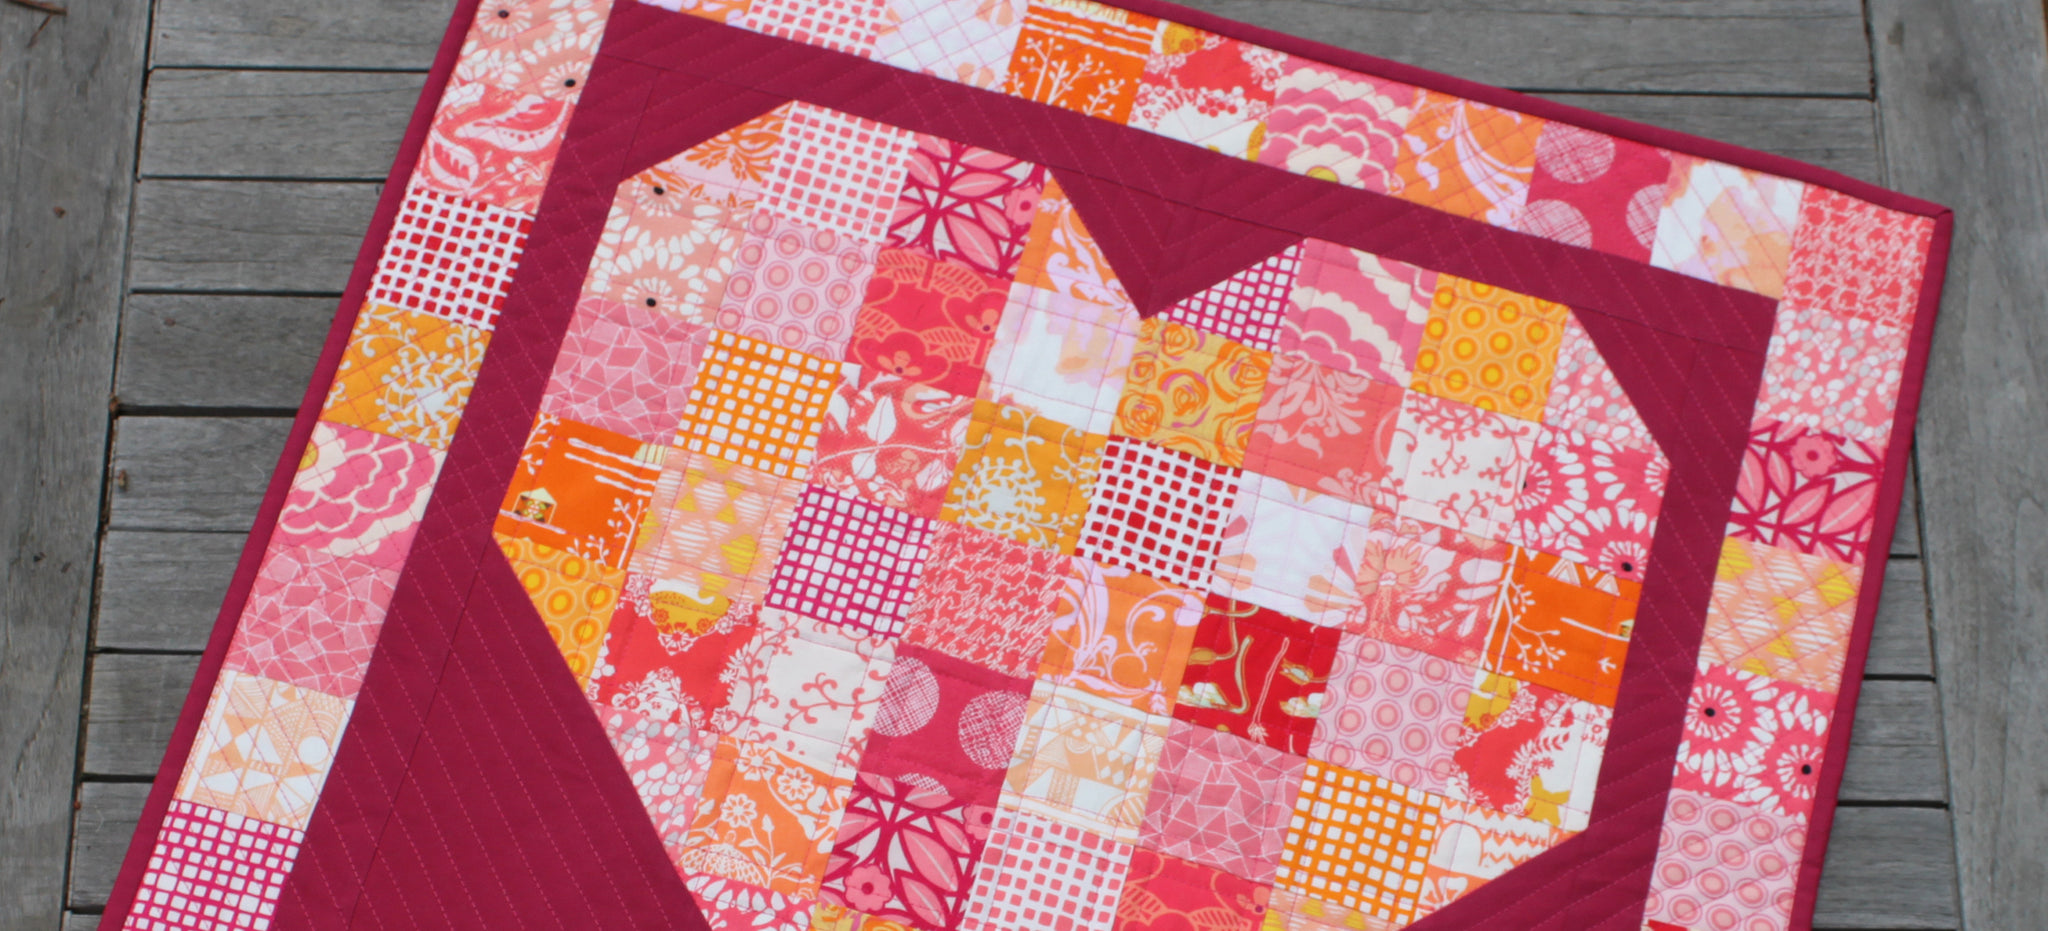 Free 'Pieces of My Heart Quilt' Pattern